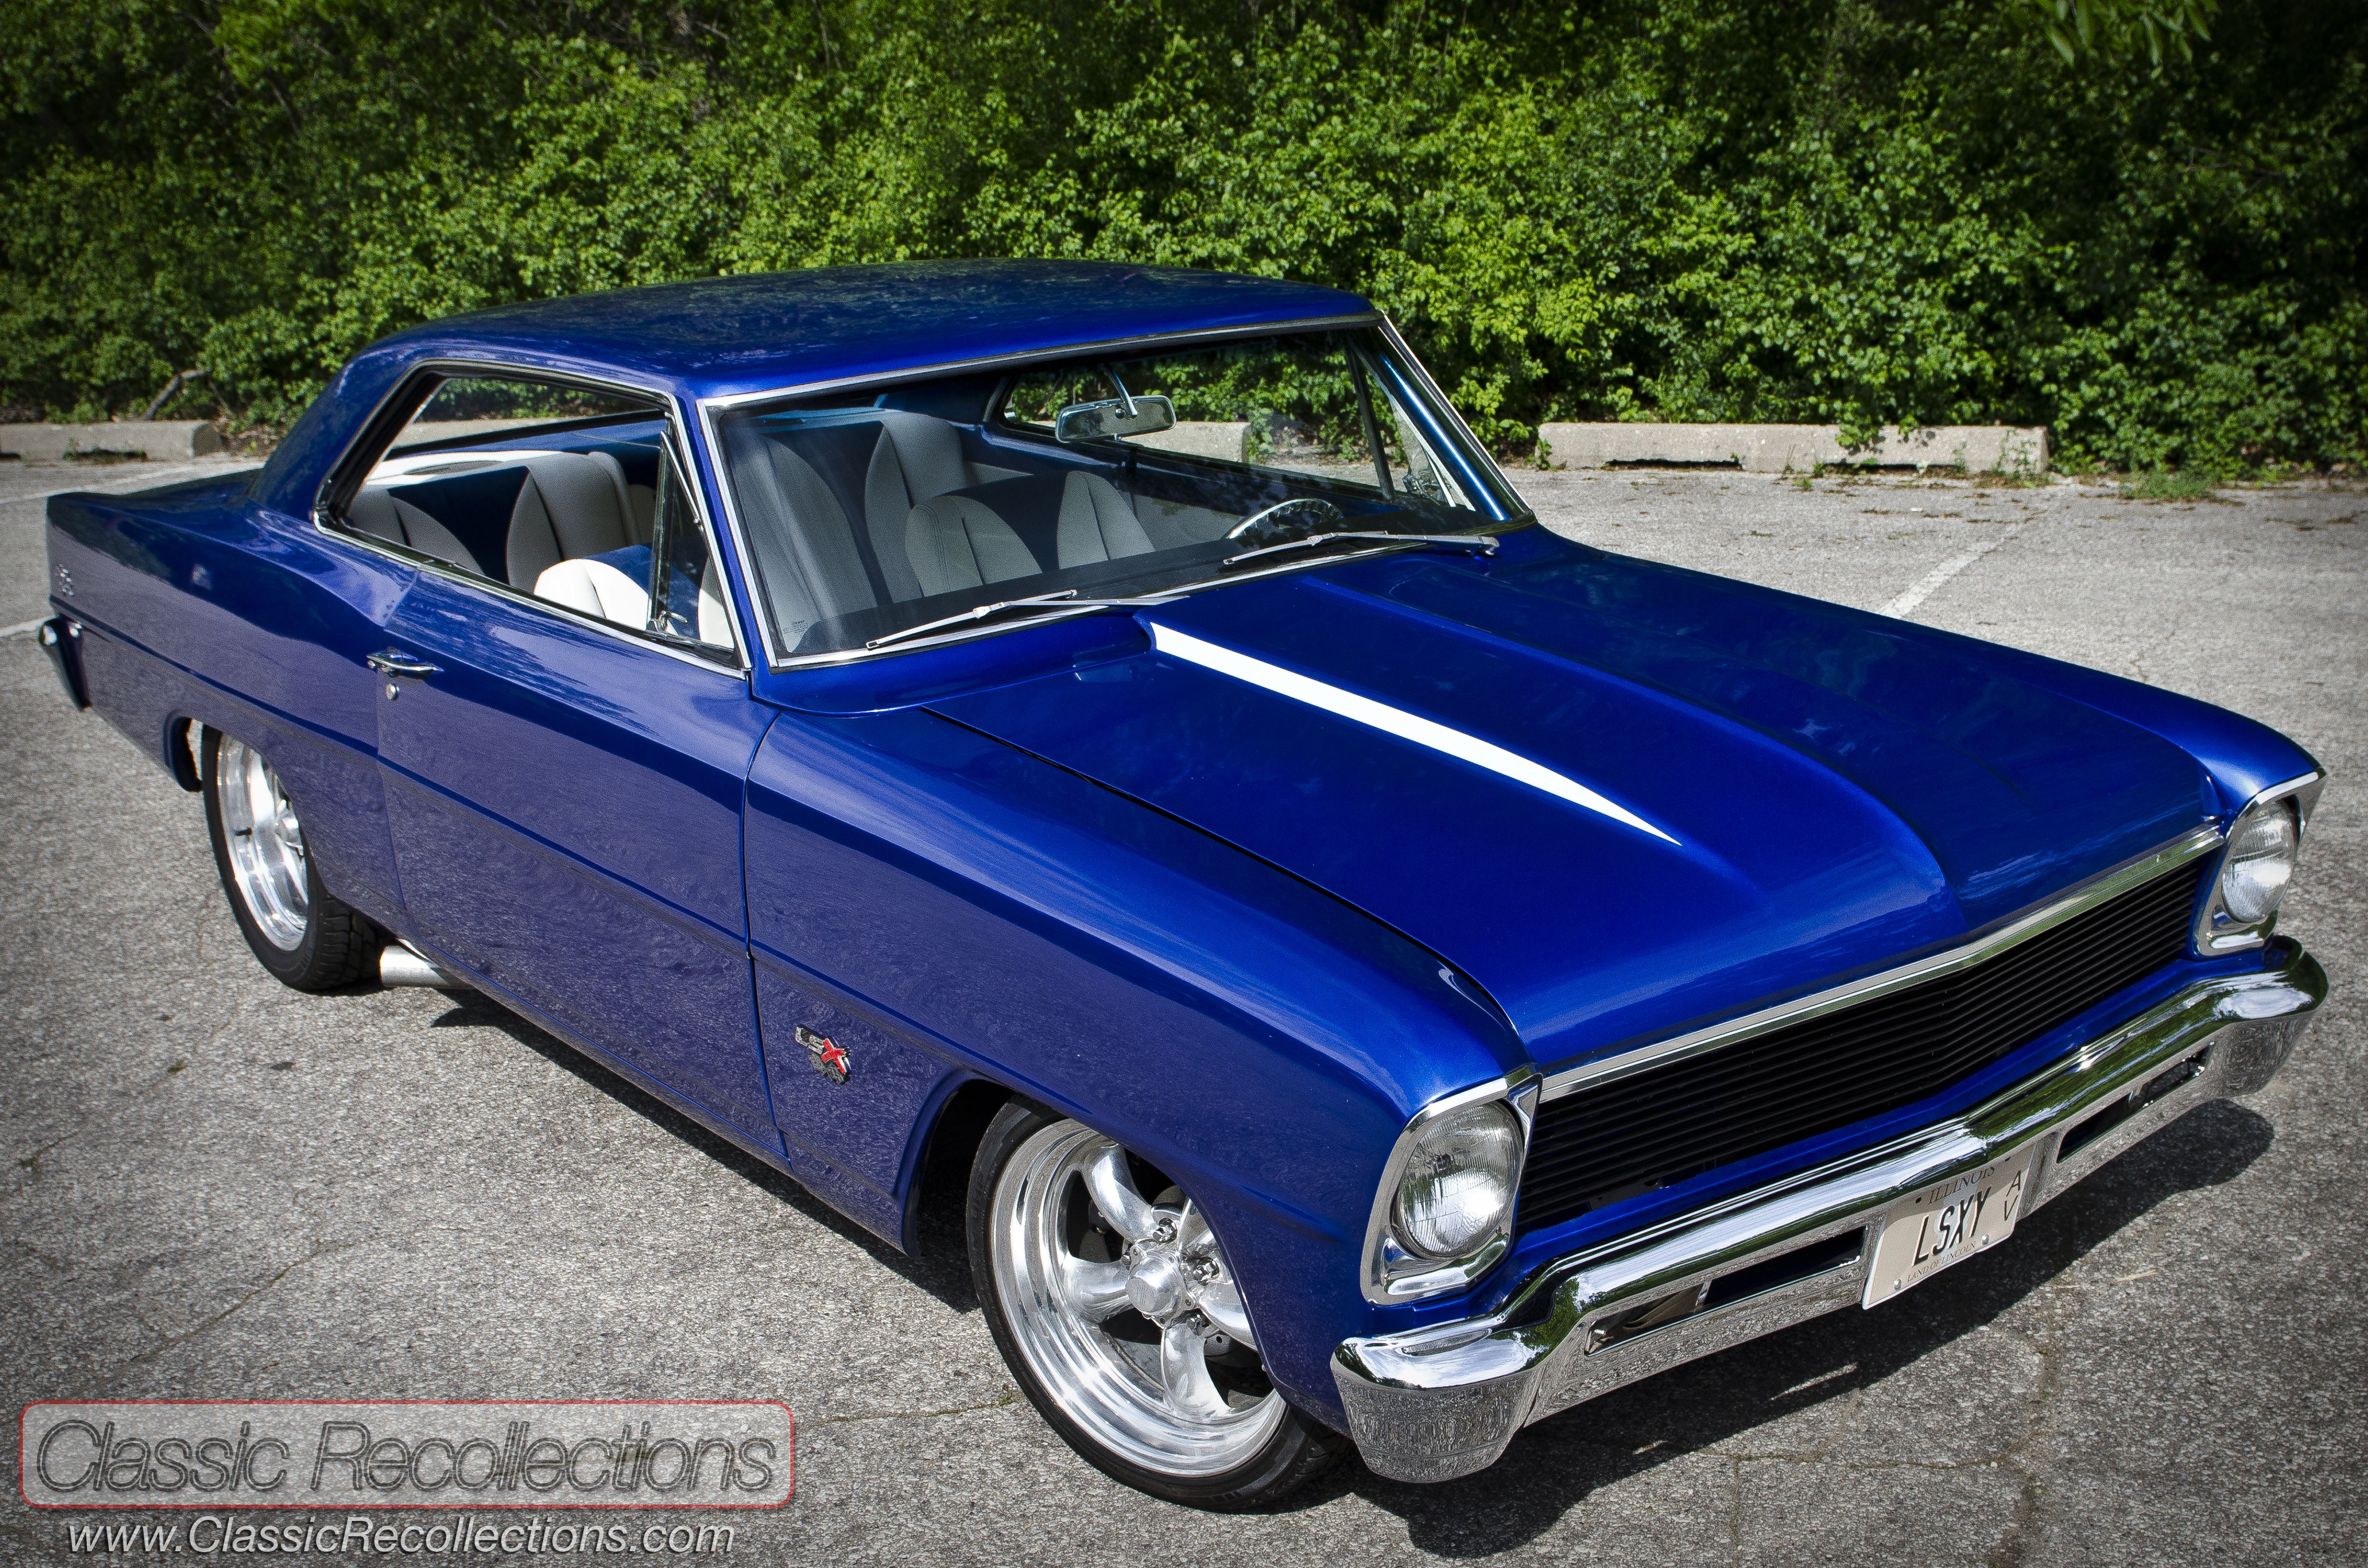 images of classic chevys | This 1966 Chevrolet Chevy II Nova was restored and cu…